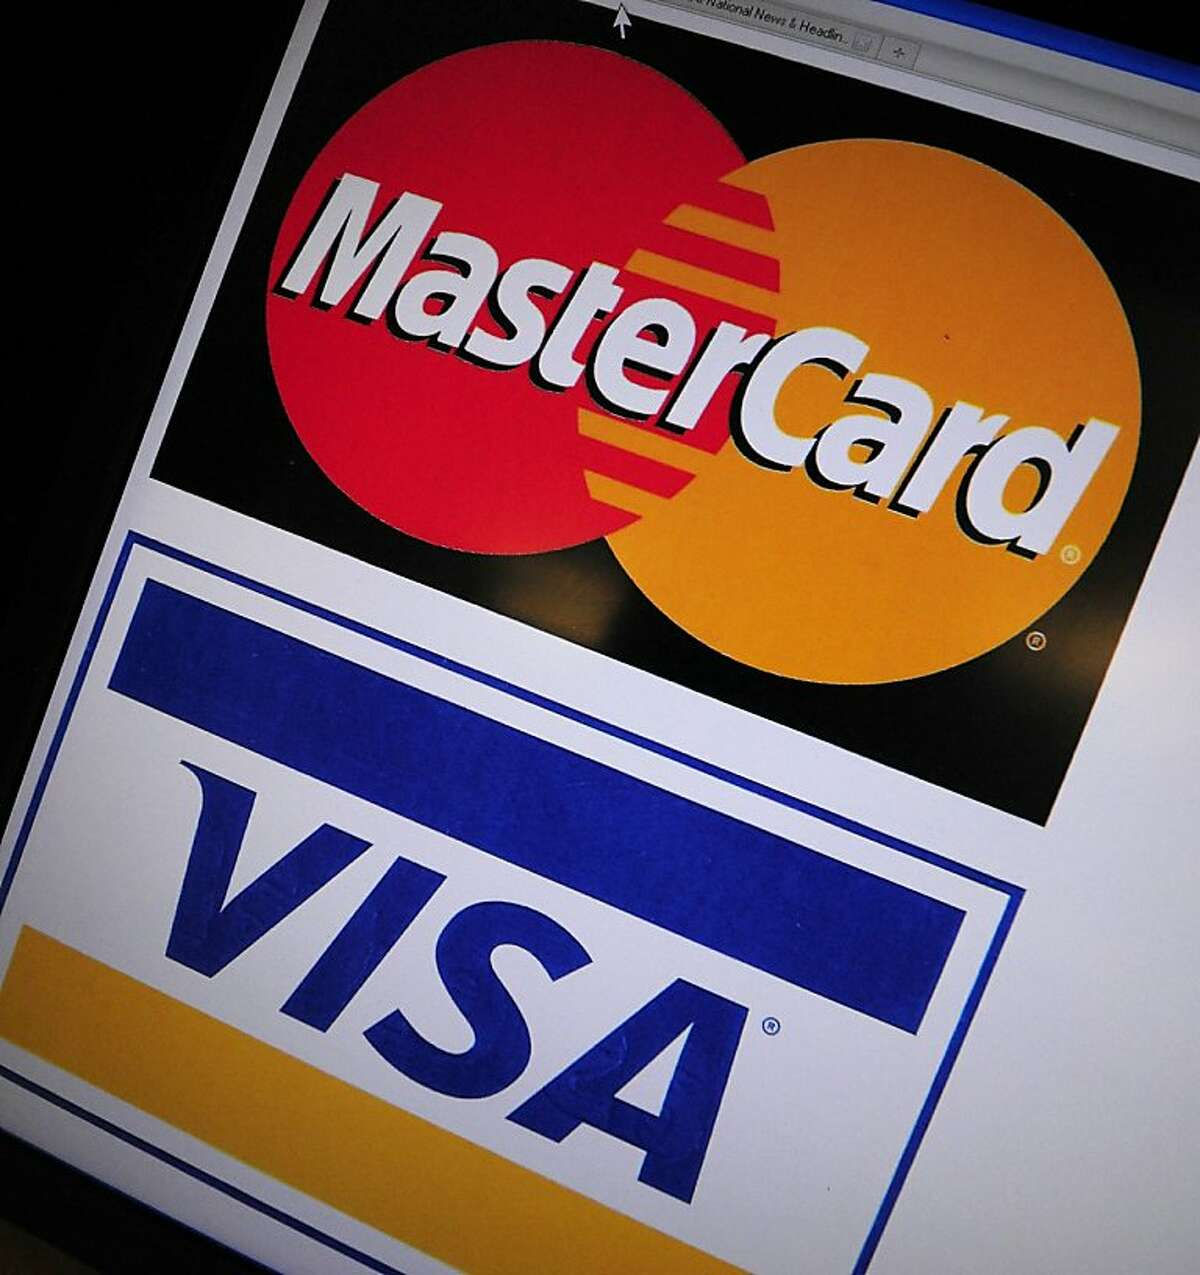 This December 9, 2010 photo shows the logos of credit card giants Mastercard and Visa. The websites Visa and Mastercard were knocked offline December 8 by WikiLeaks supporters, who also took aim at US conservative standard bearer Sarah Palin and a US senator. Visa.com went down instantaneously at 4:00 pm (2100 GMT) as members of the hackers group known as